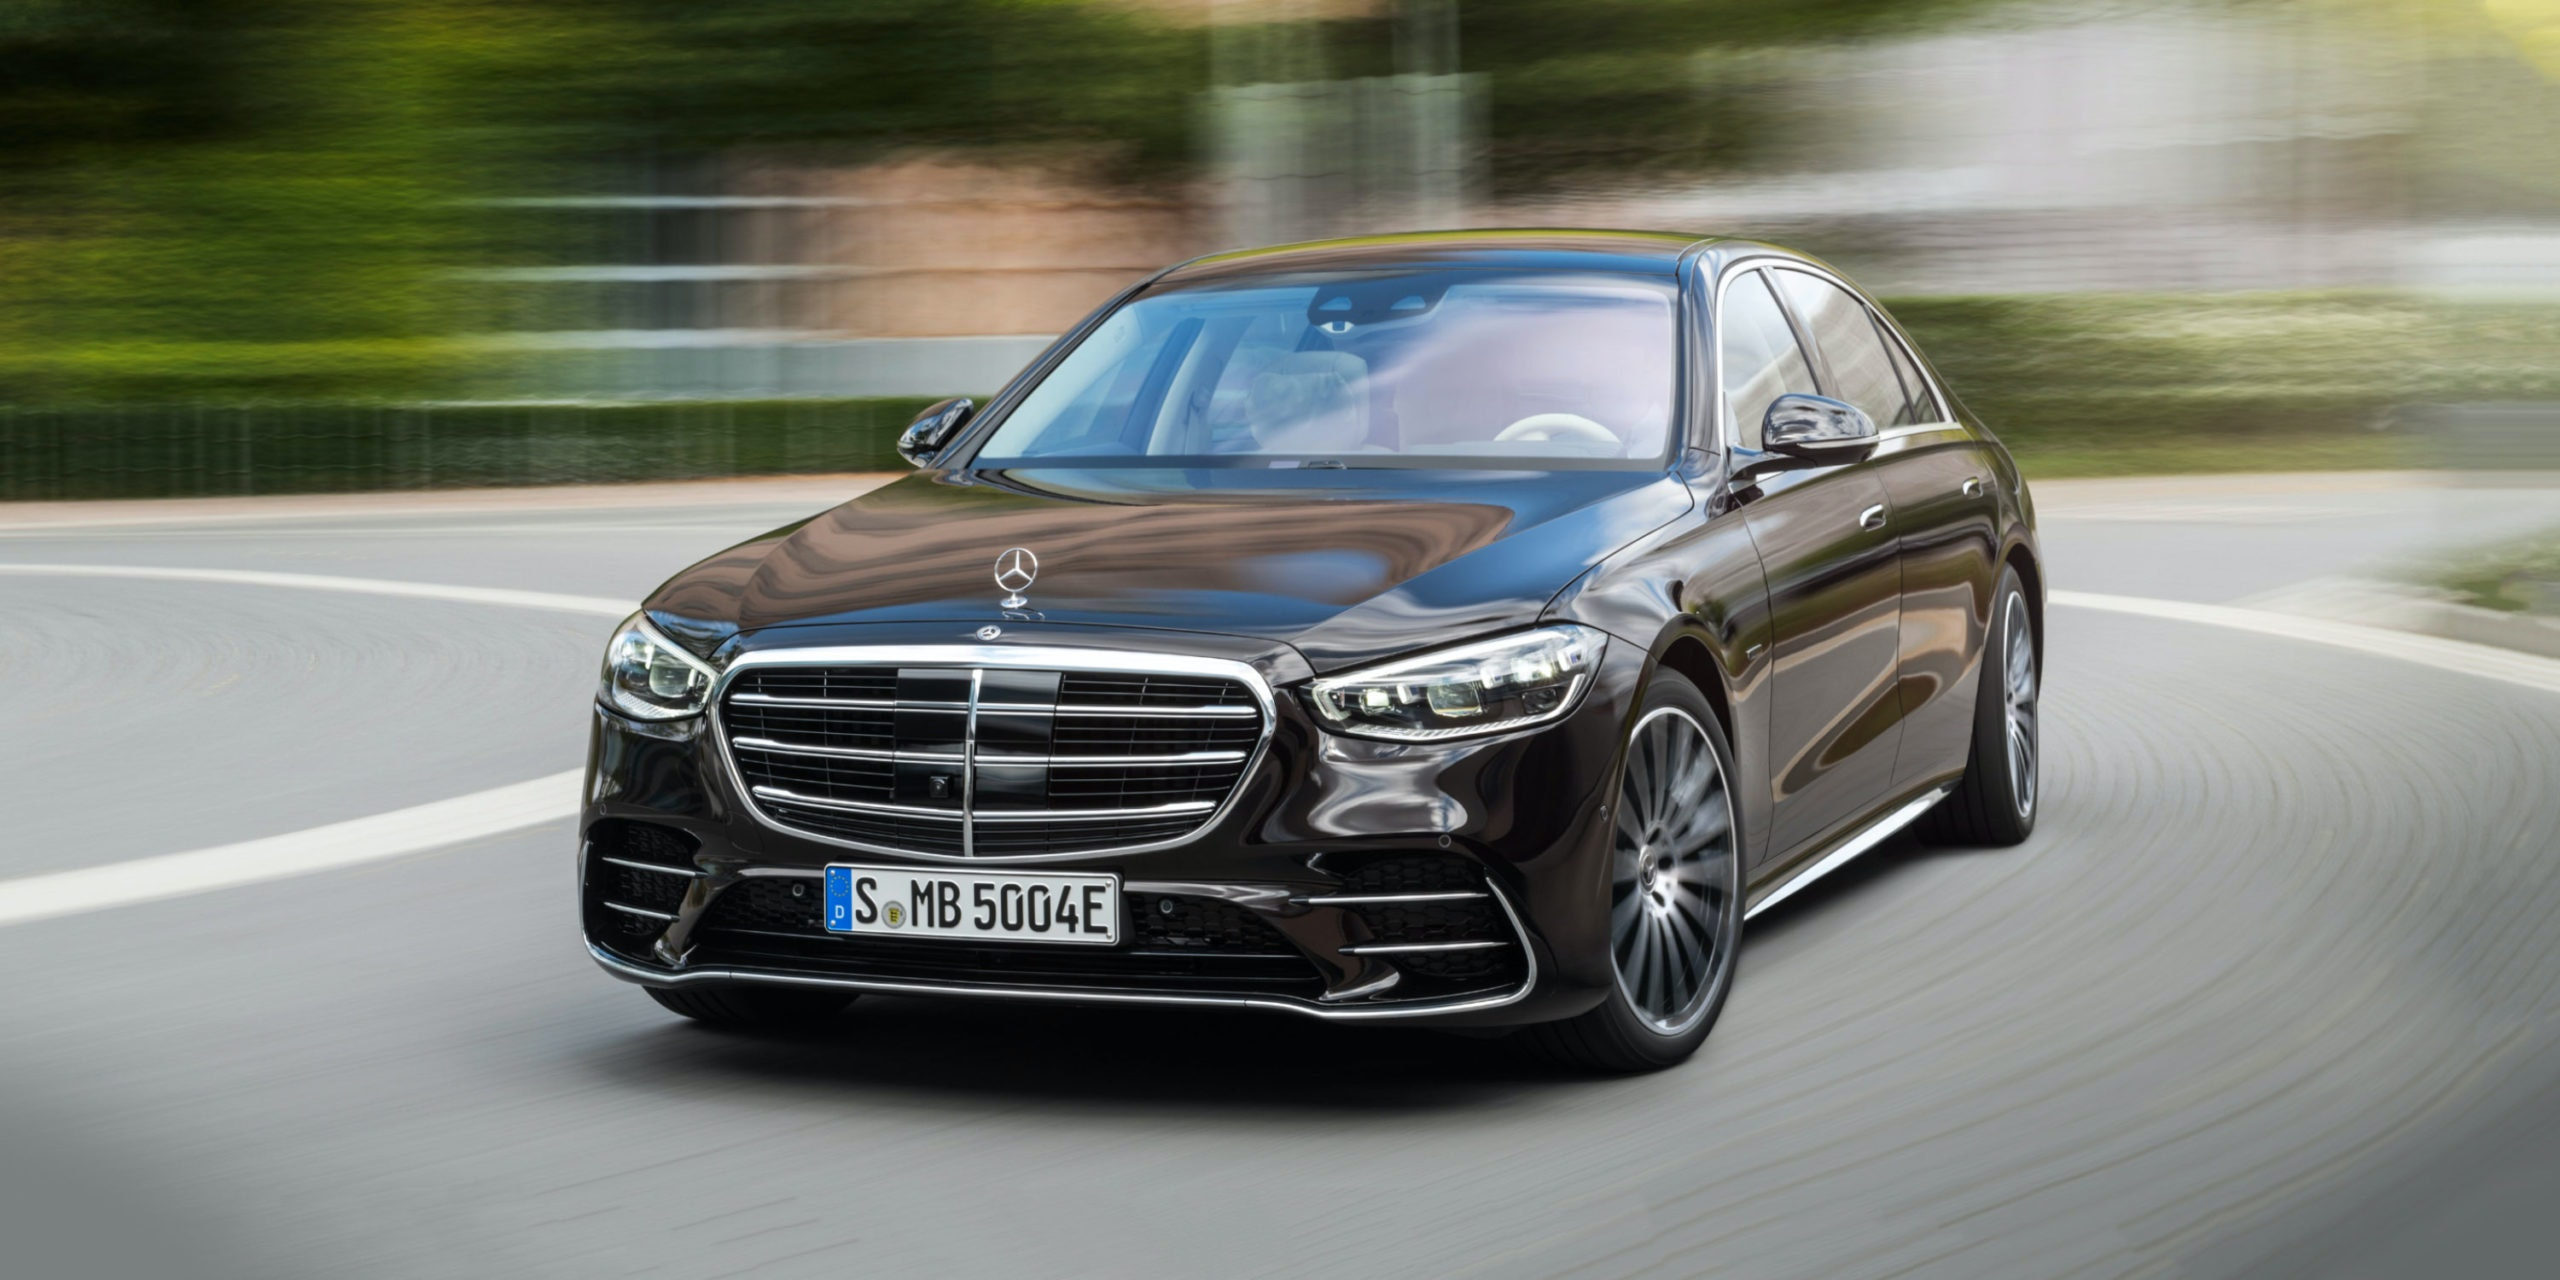 New 2020 Mercedes S Class On Sale Now Prices And Specs Revealed Carwow